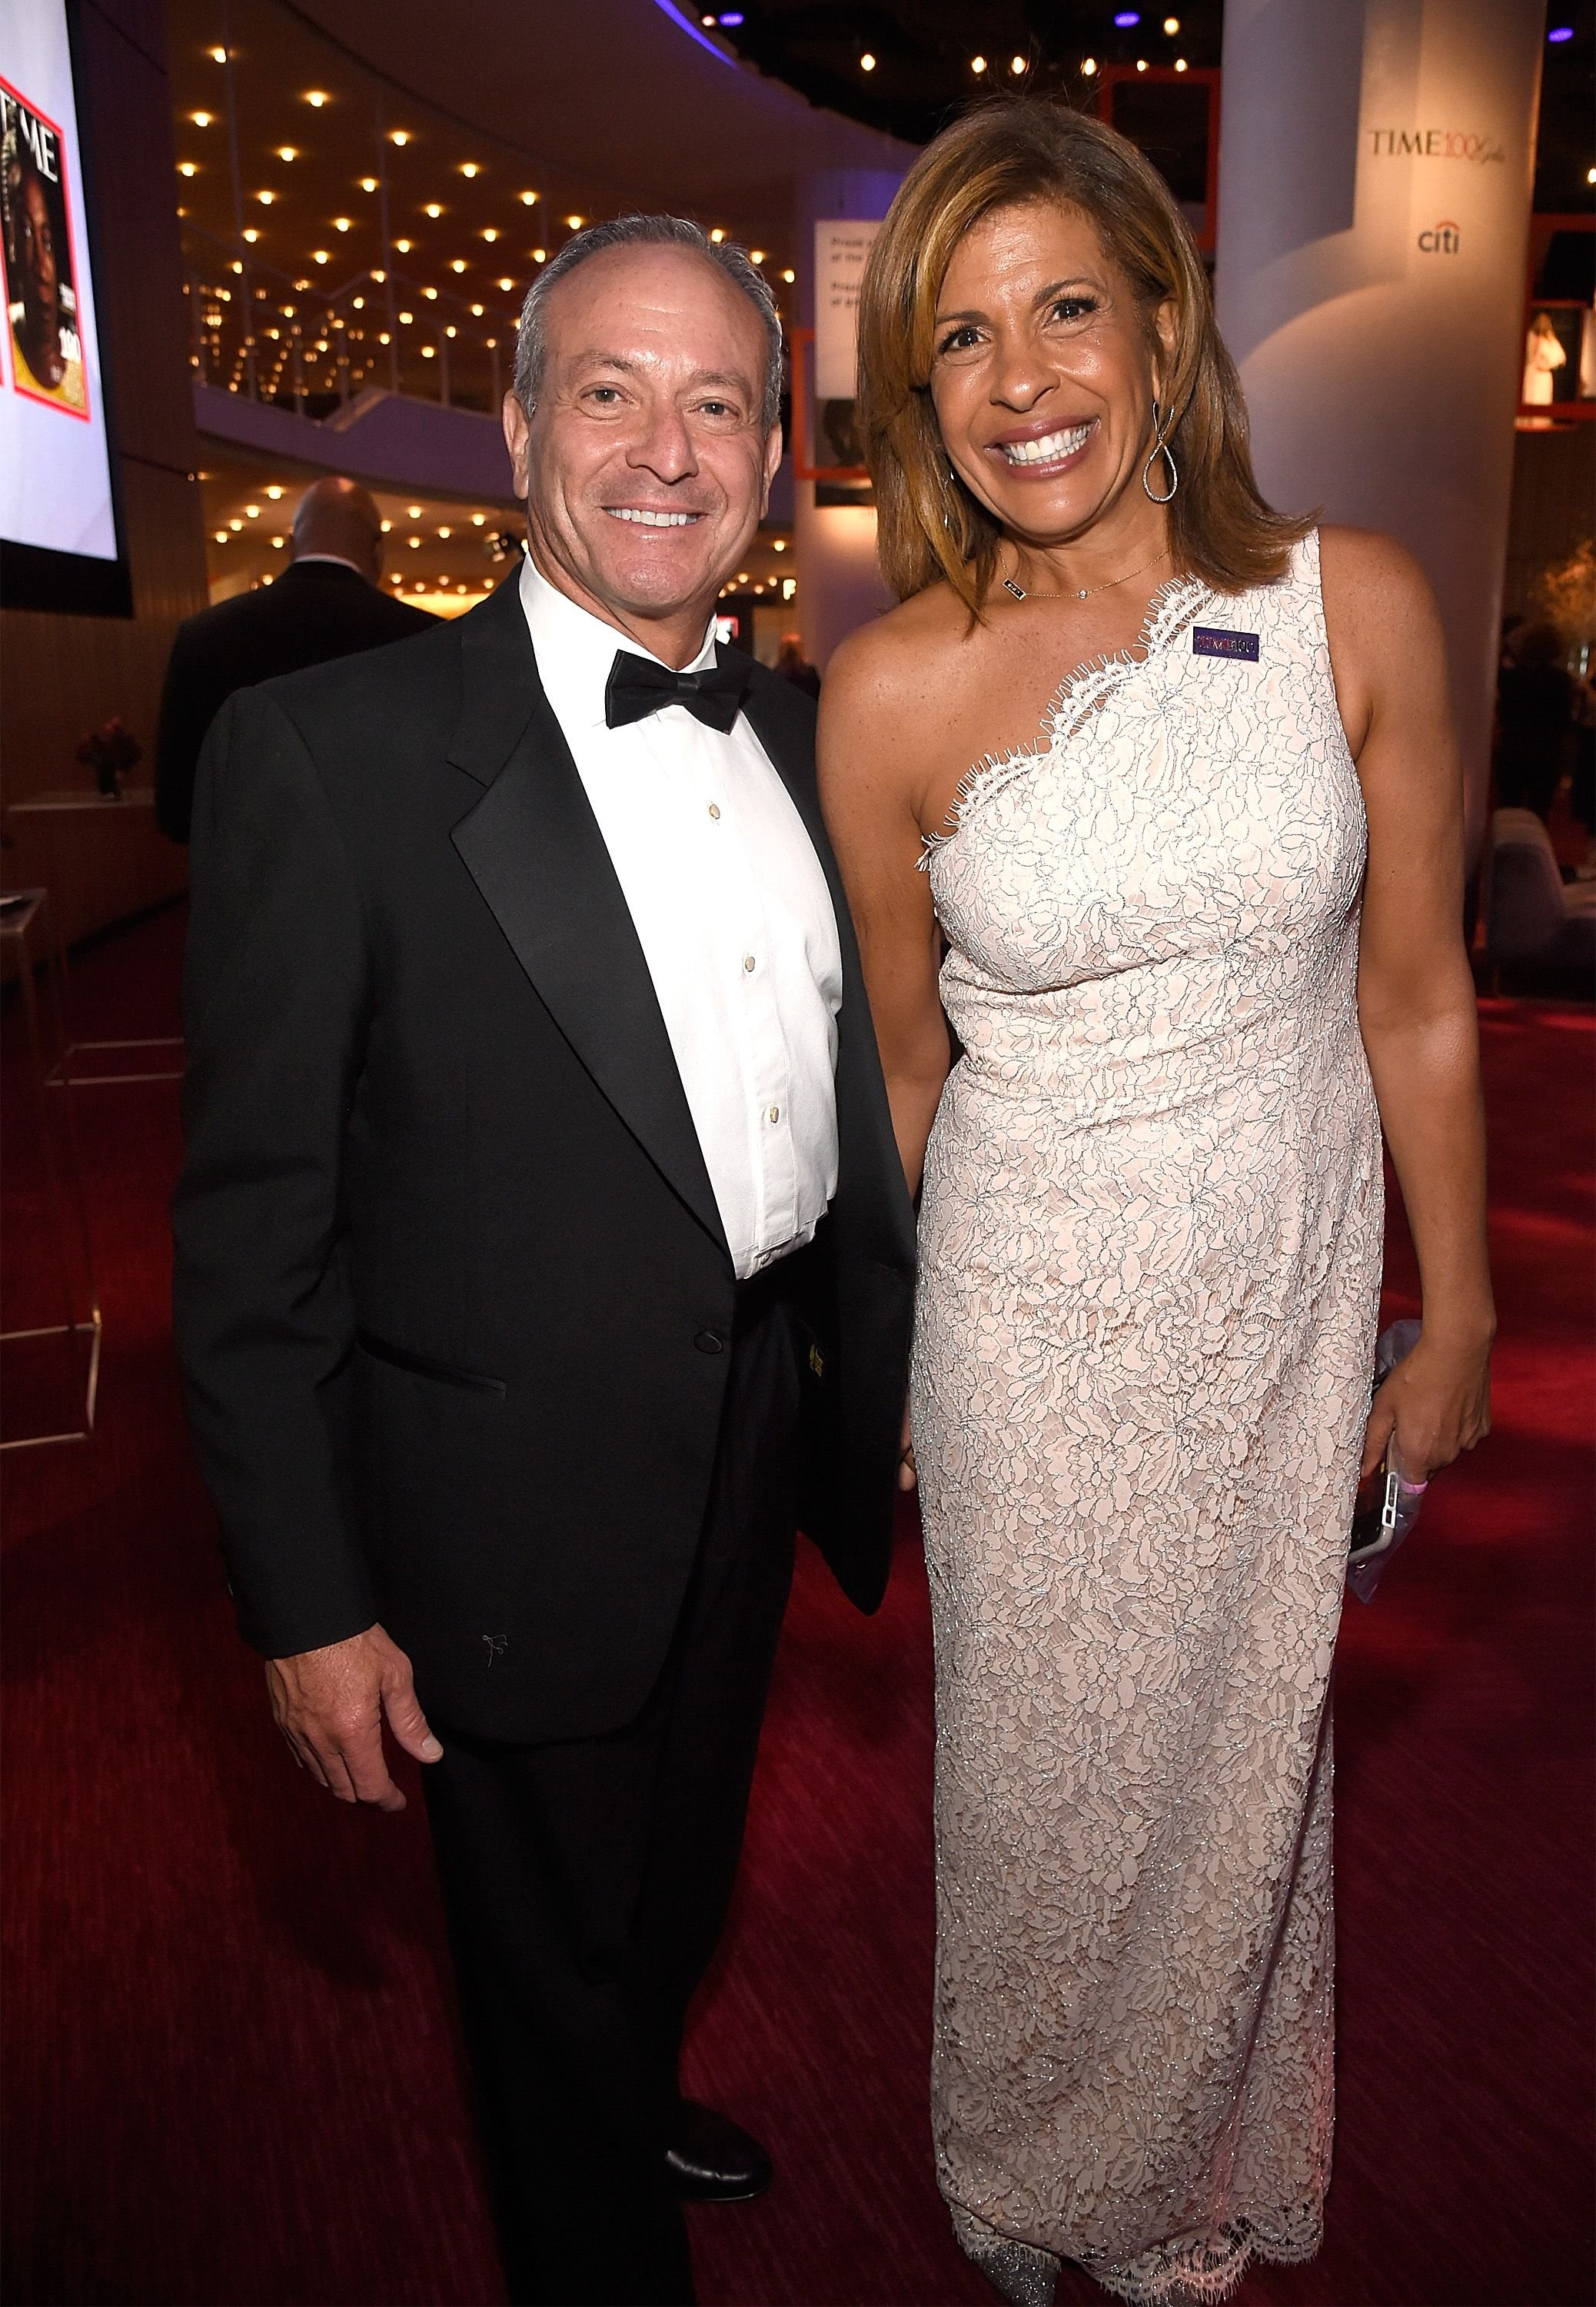 Joel Schiffman and Hoda Kotb at the 2018 Time 100 Gala at Jazz at Lincoln Center on April 24, 2018 | Photo: Getty Images